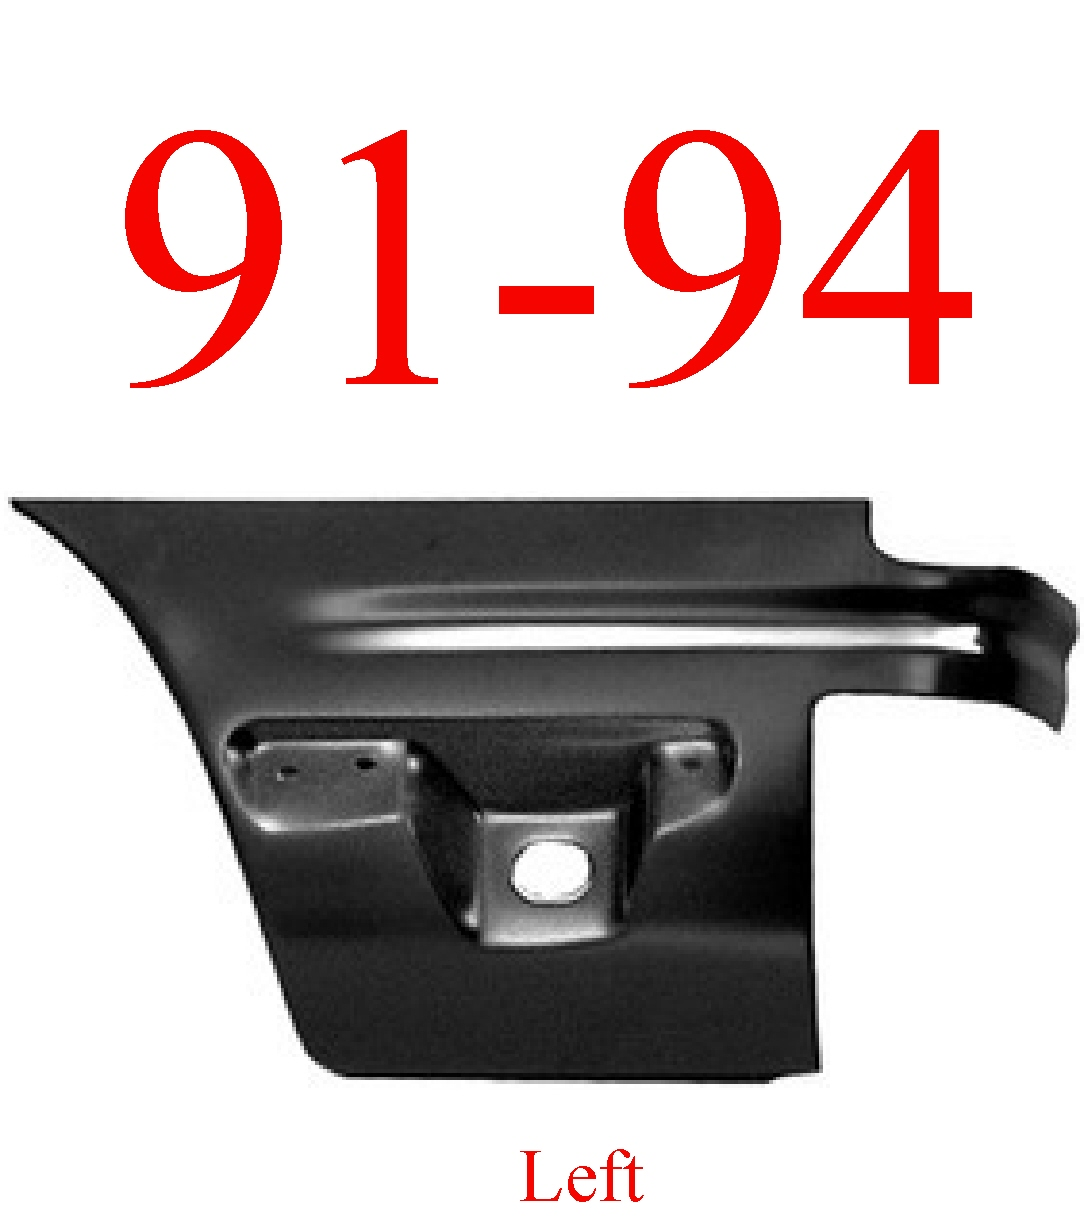 91-94 Ford Explorer Left Lower Rear Quarter Panel